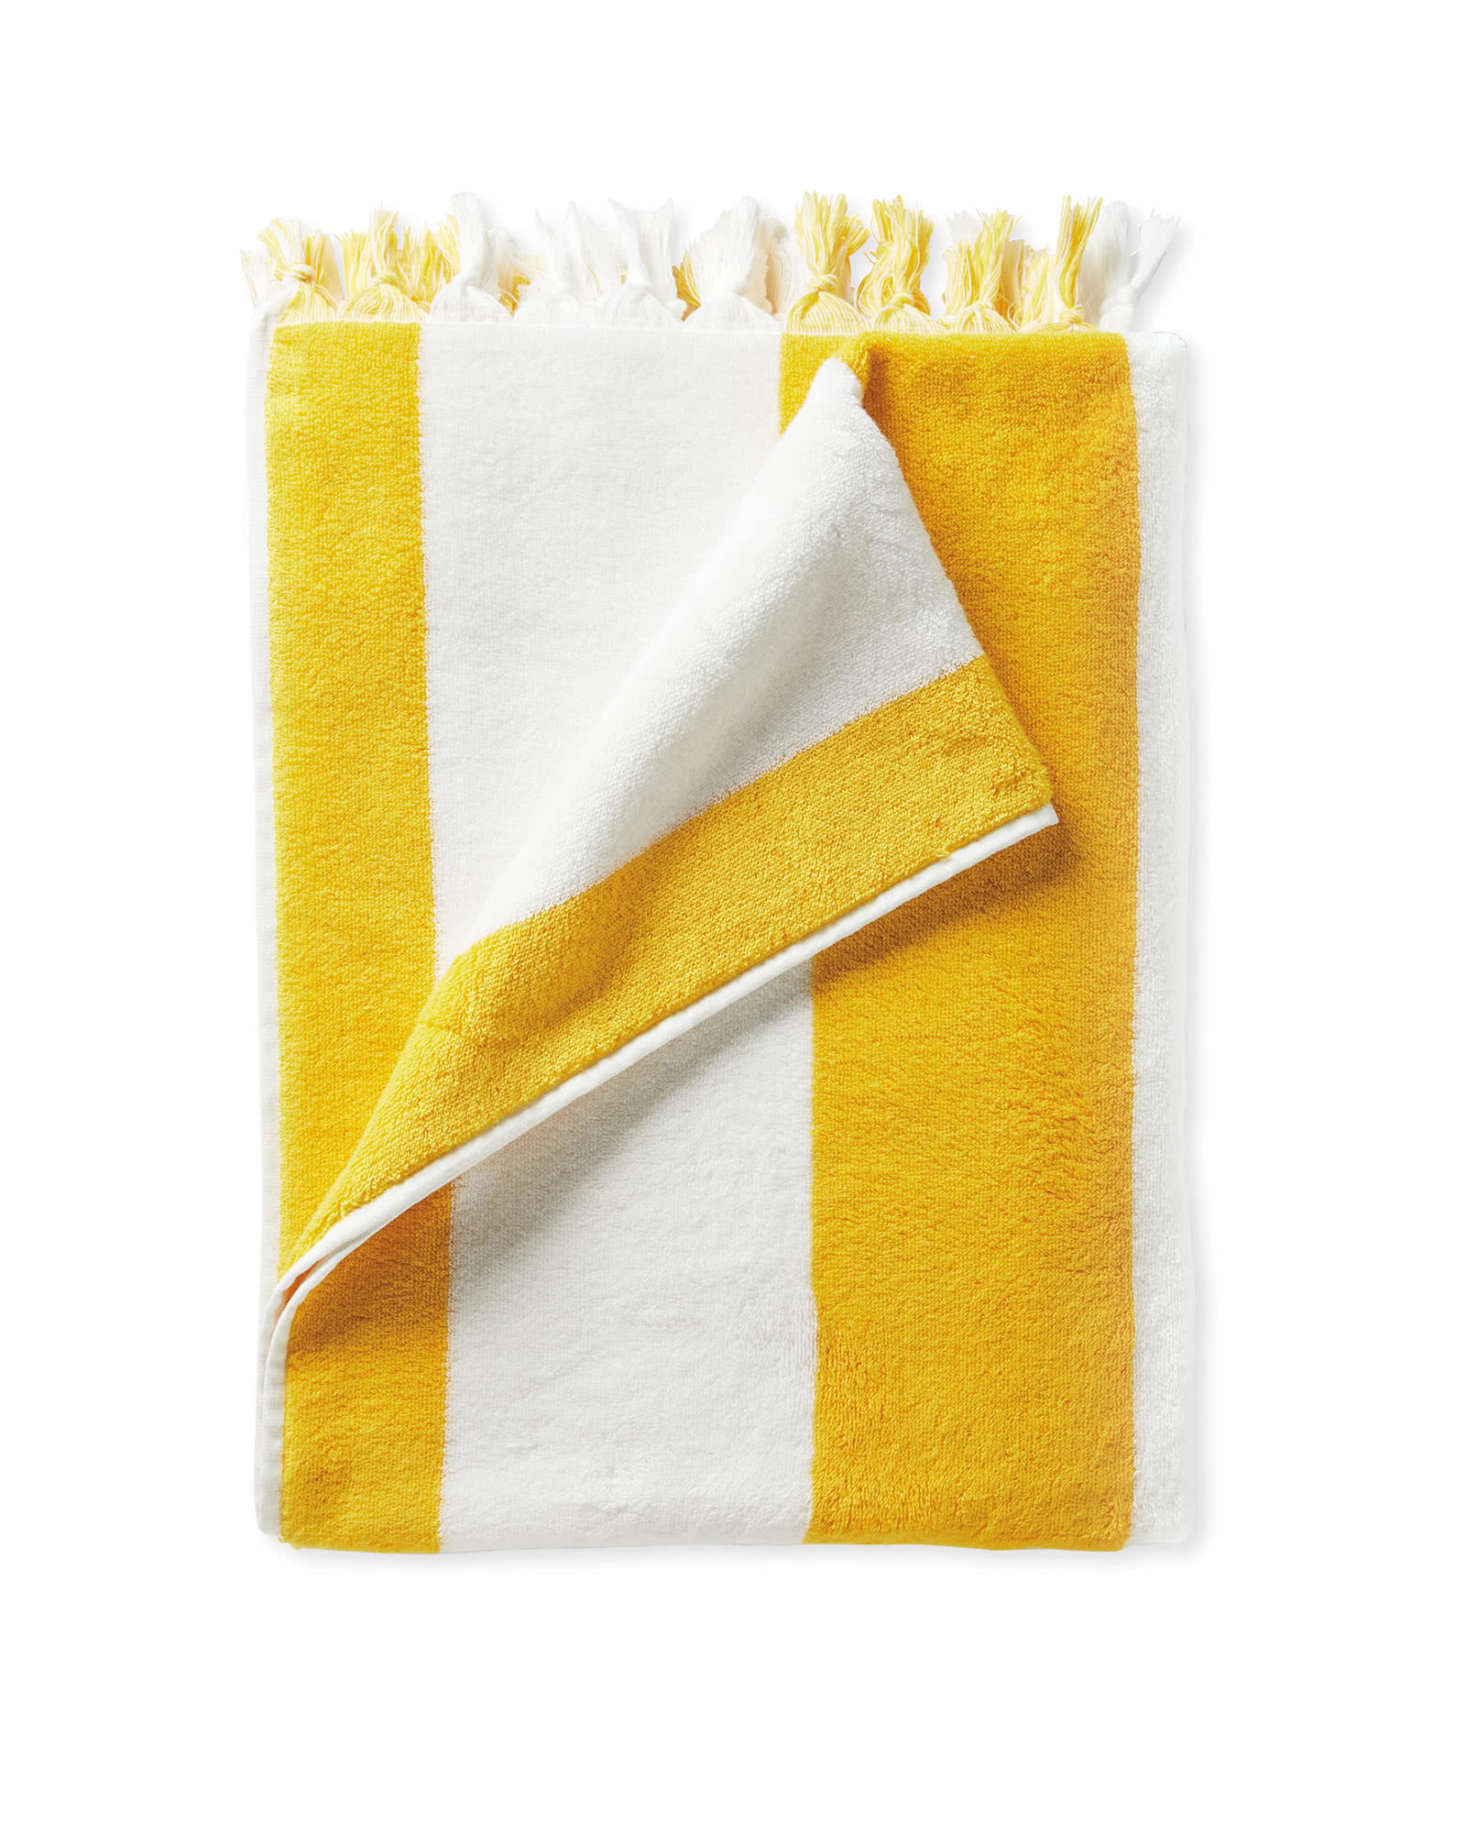 Serena & Lily's Turkish cotton striped Mallorca Towel comes in five colors (including Canary (shown above); $58.